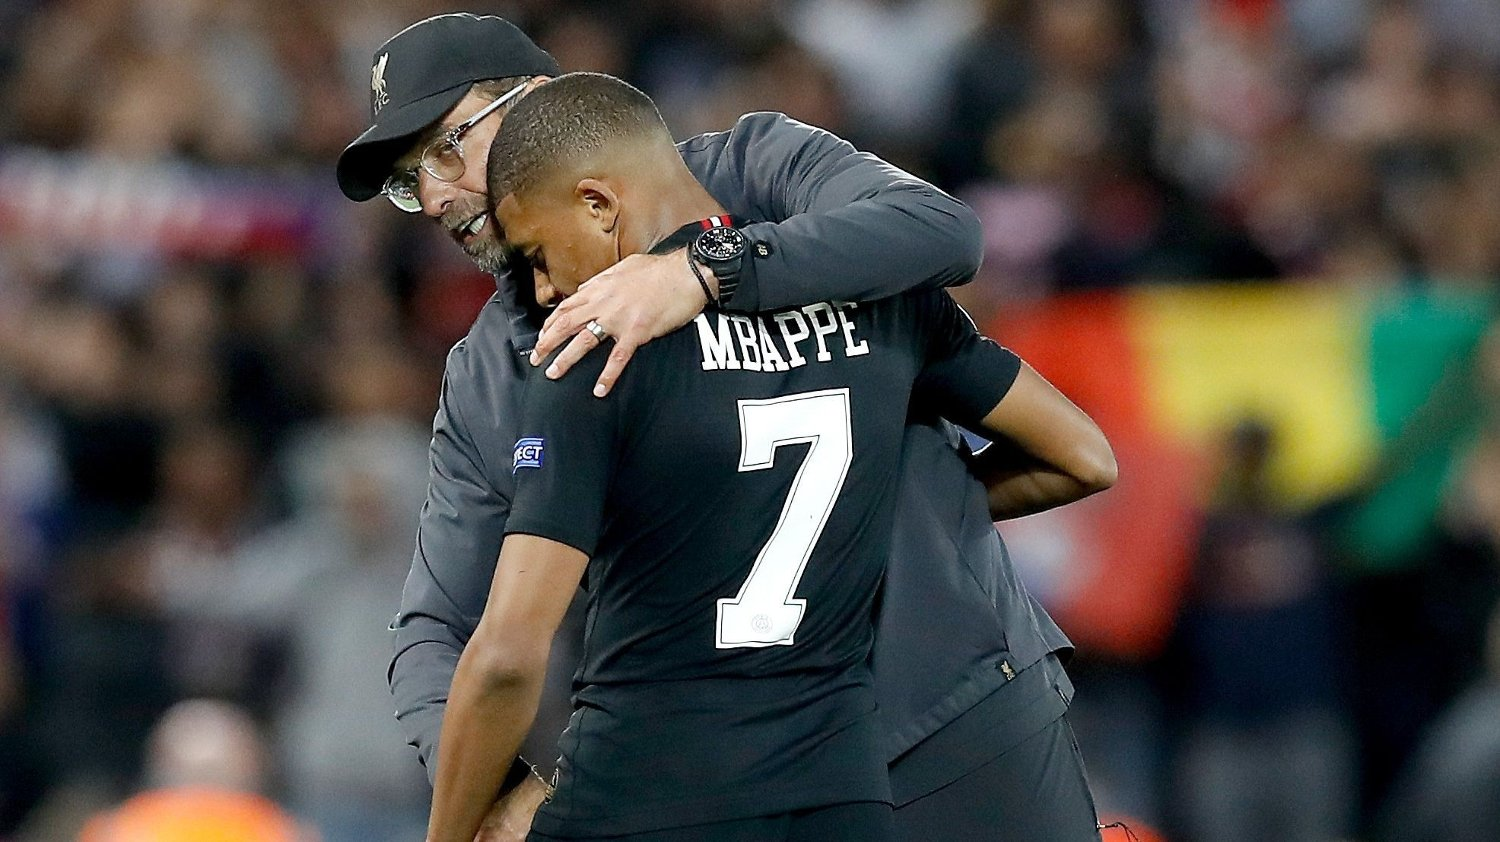 Liverpool manager Jurgen Klopp with Paris Saint-Germain's Kylian Mbappe after the final whistle